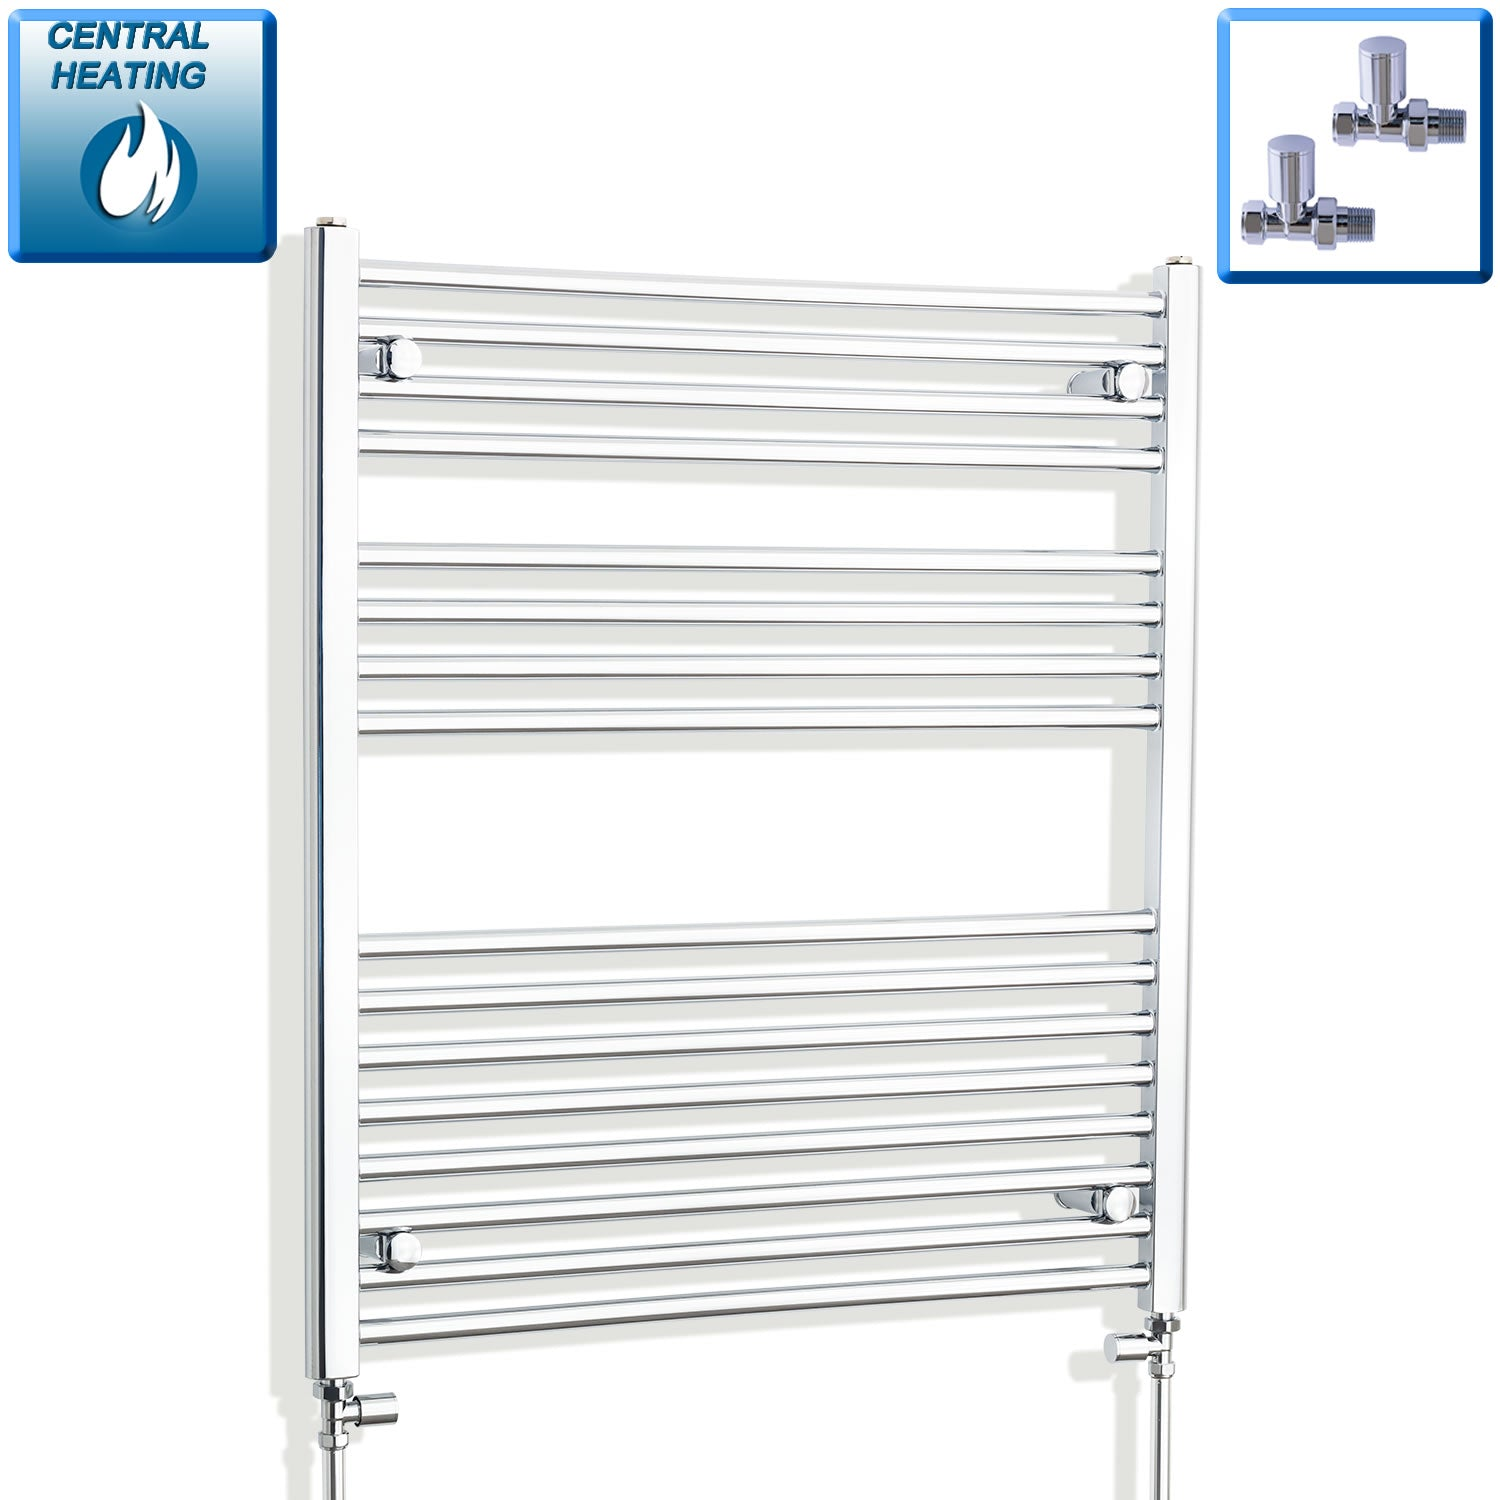 900mm Wide 900mm High Chrome Towel Rail Radiator With Straight Valve